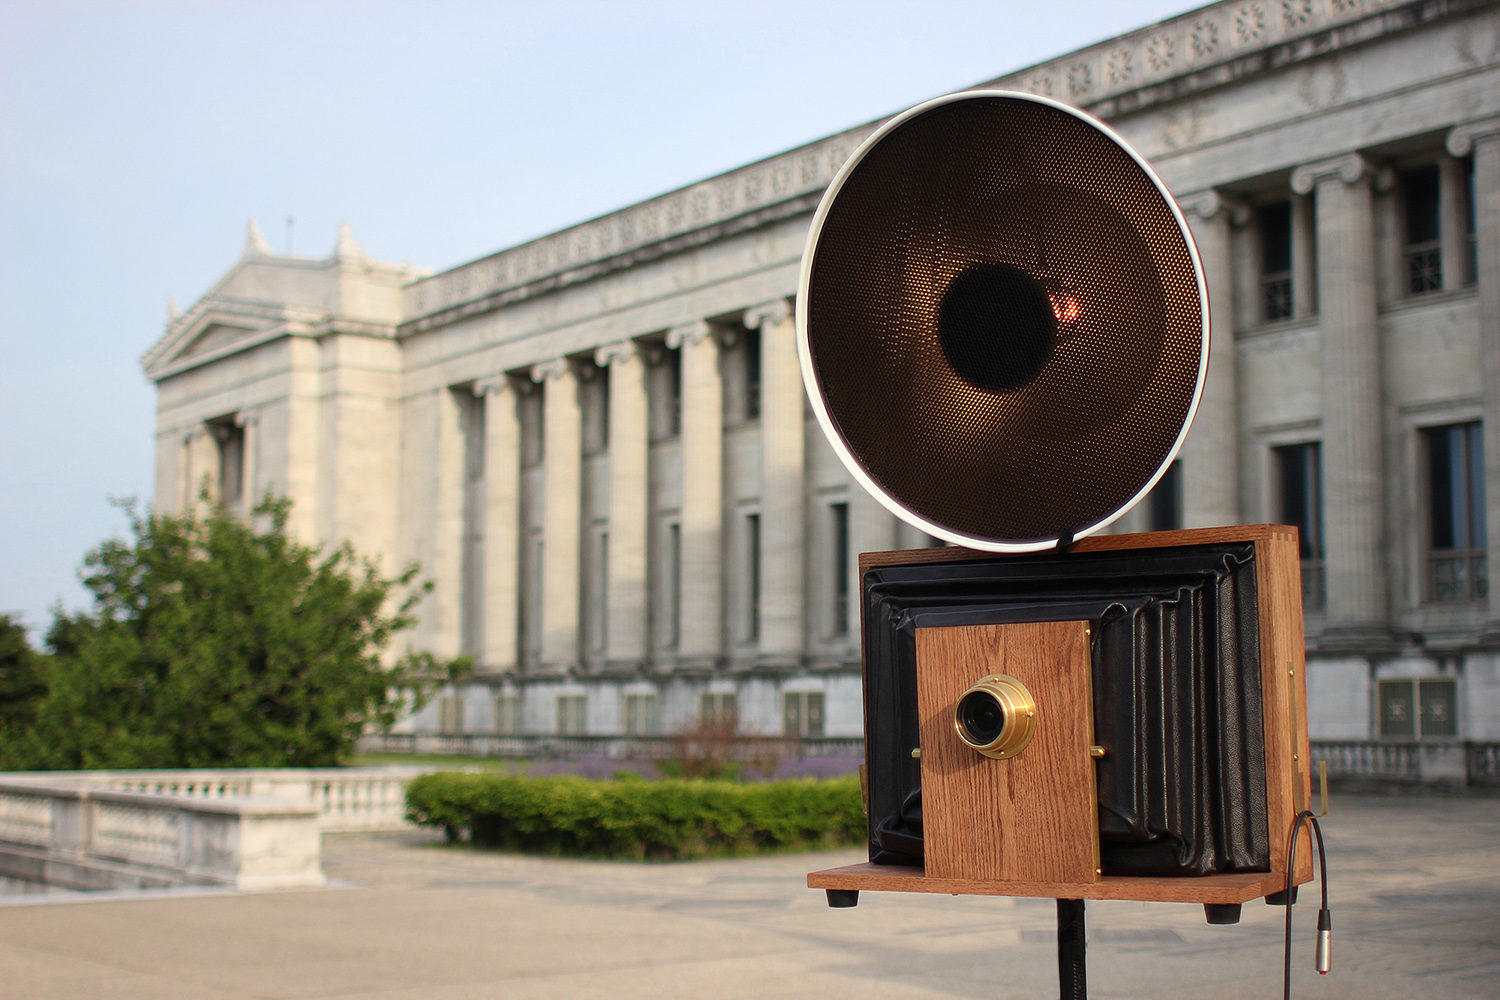 Fotio - Vintage Open-Air Photo Booth Rental in Chicago, IL